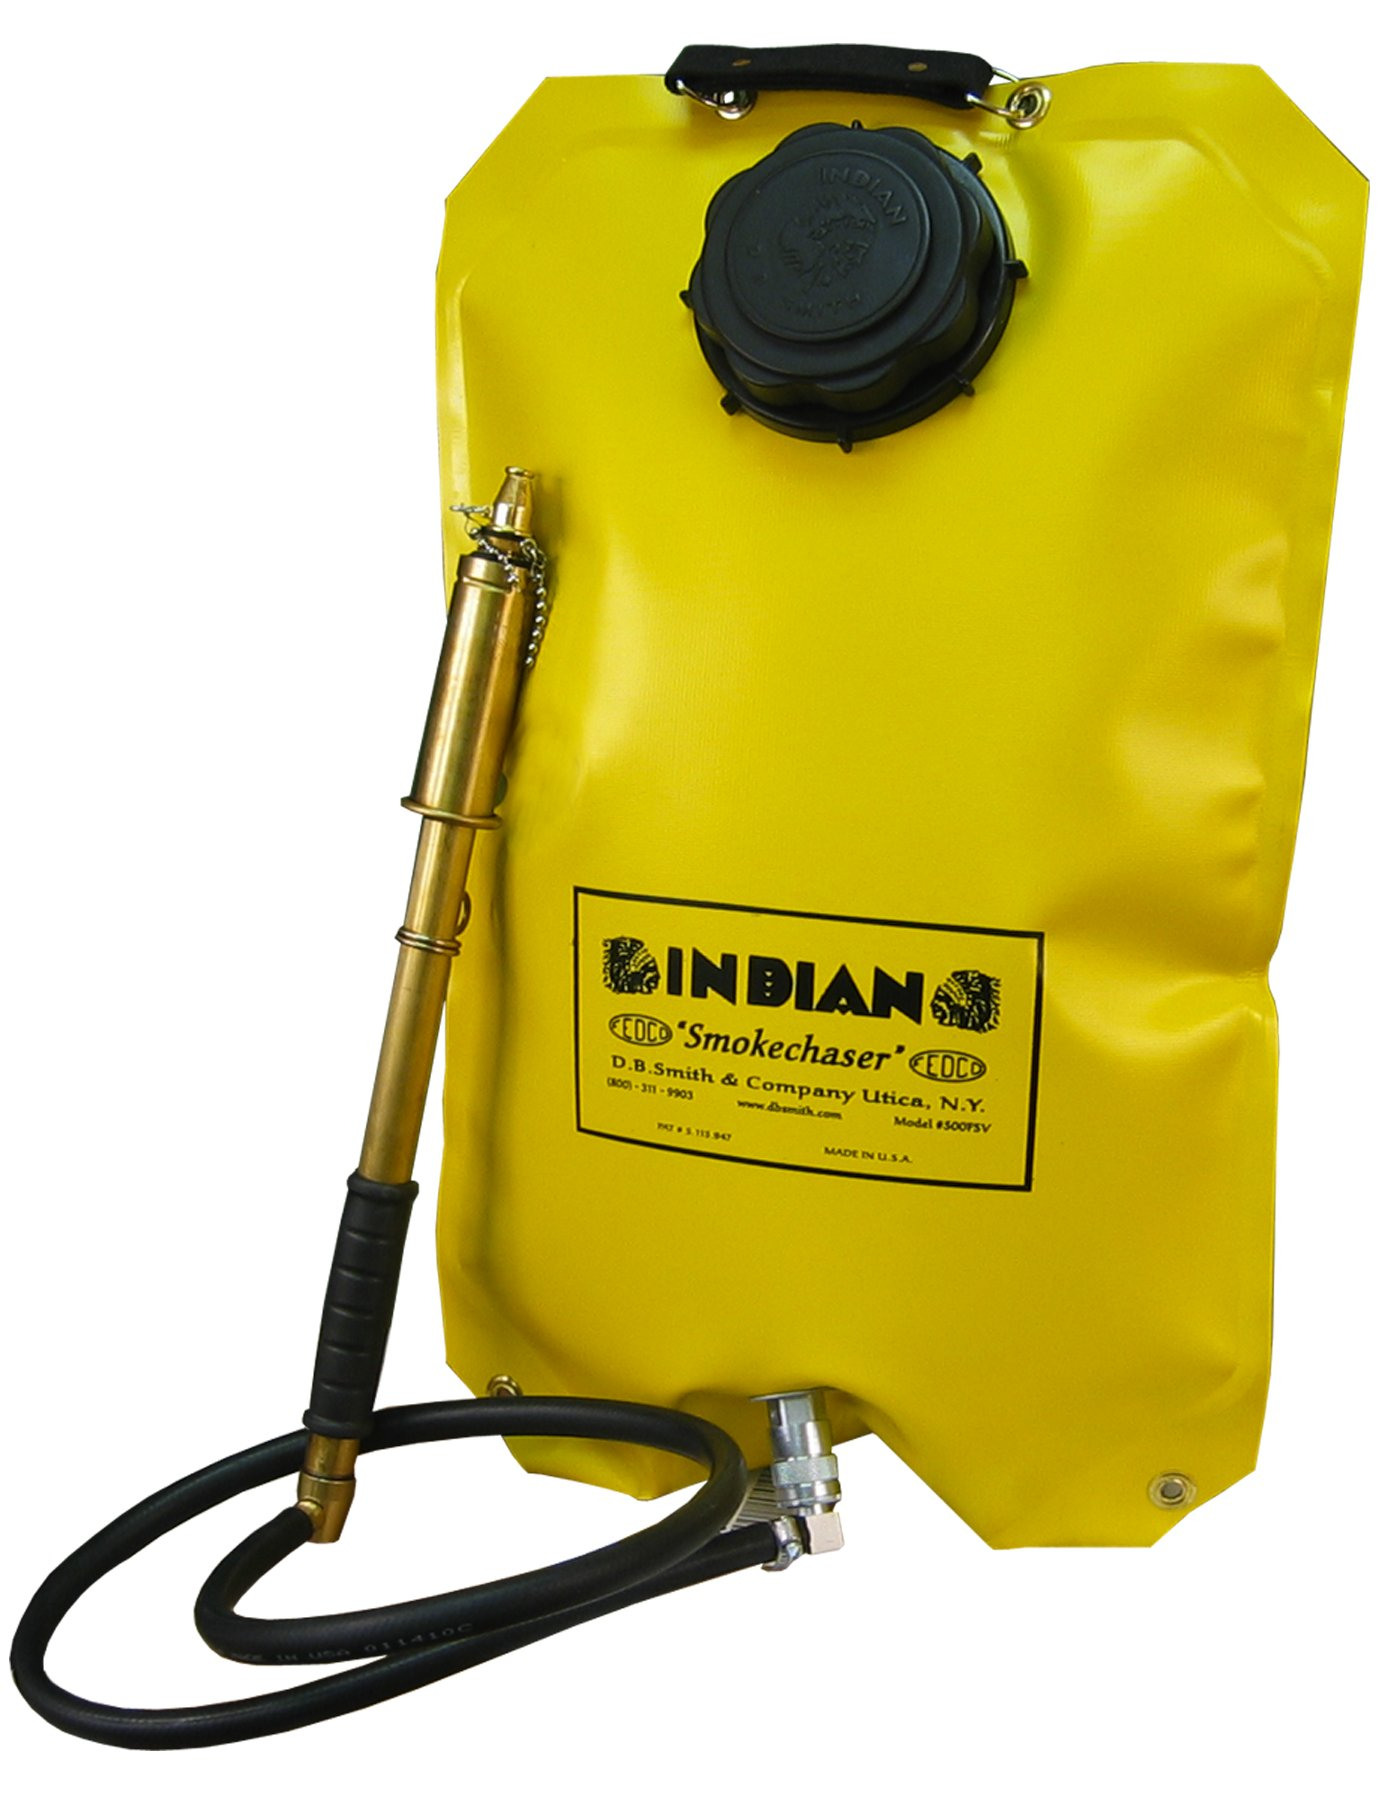 Indian FSV500 Fedco Smoke Chaser Fire Pump, 5 gal, Yellow by Indian